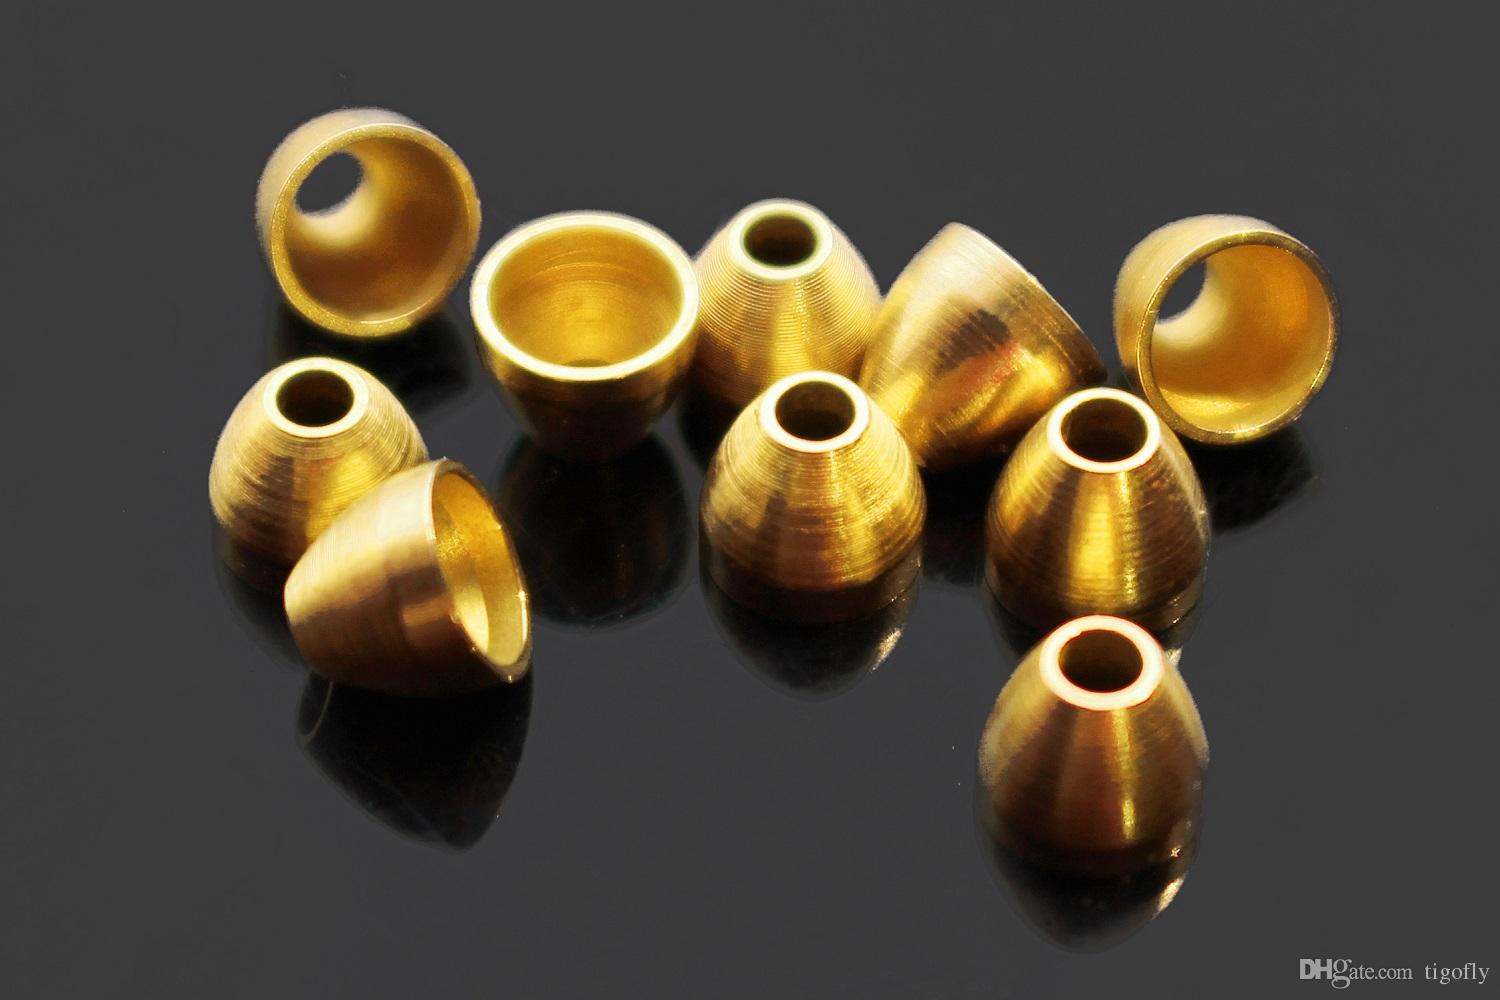 Tigofly 40 pcs/lot Copper Brass Cone Heads For Tying Tube Flies Streamers Fly Tying Beads Materials 5mmX4.1mmX1.7mm